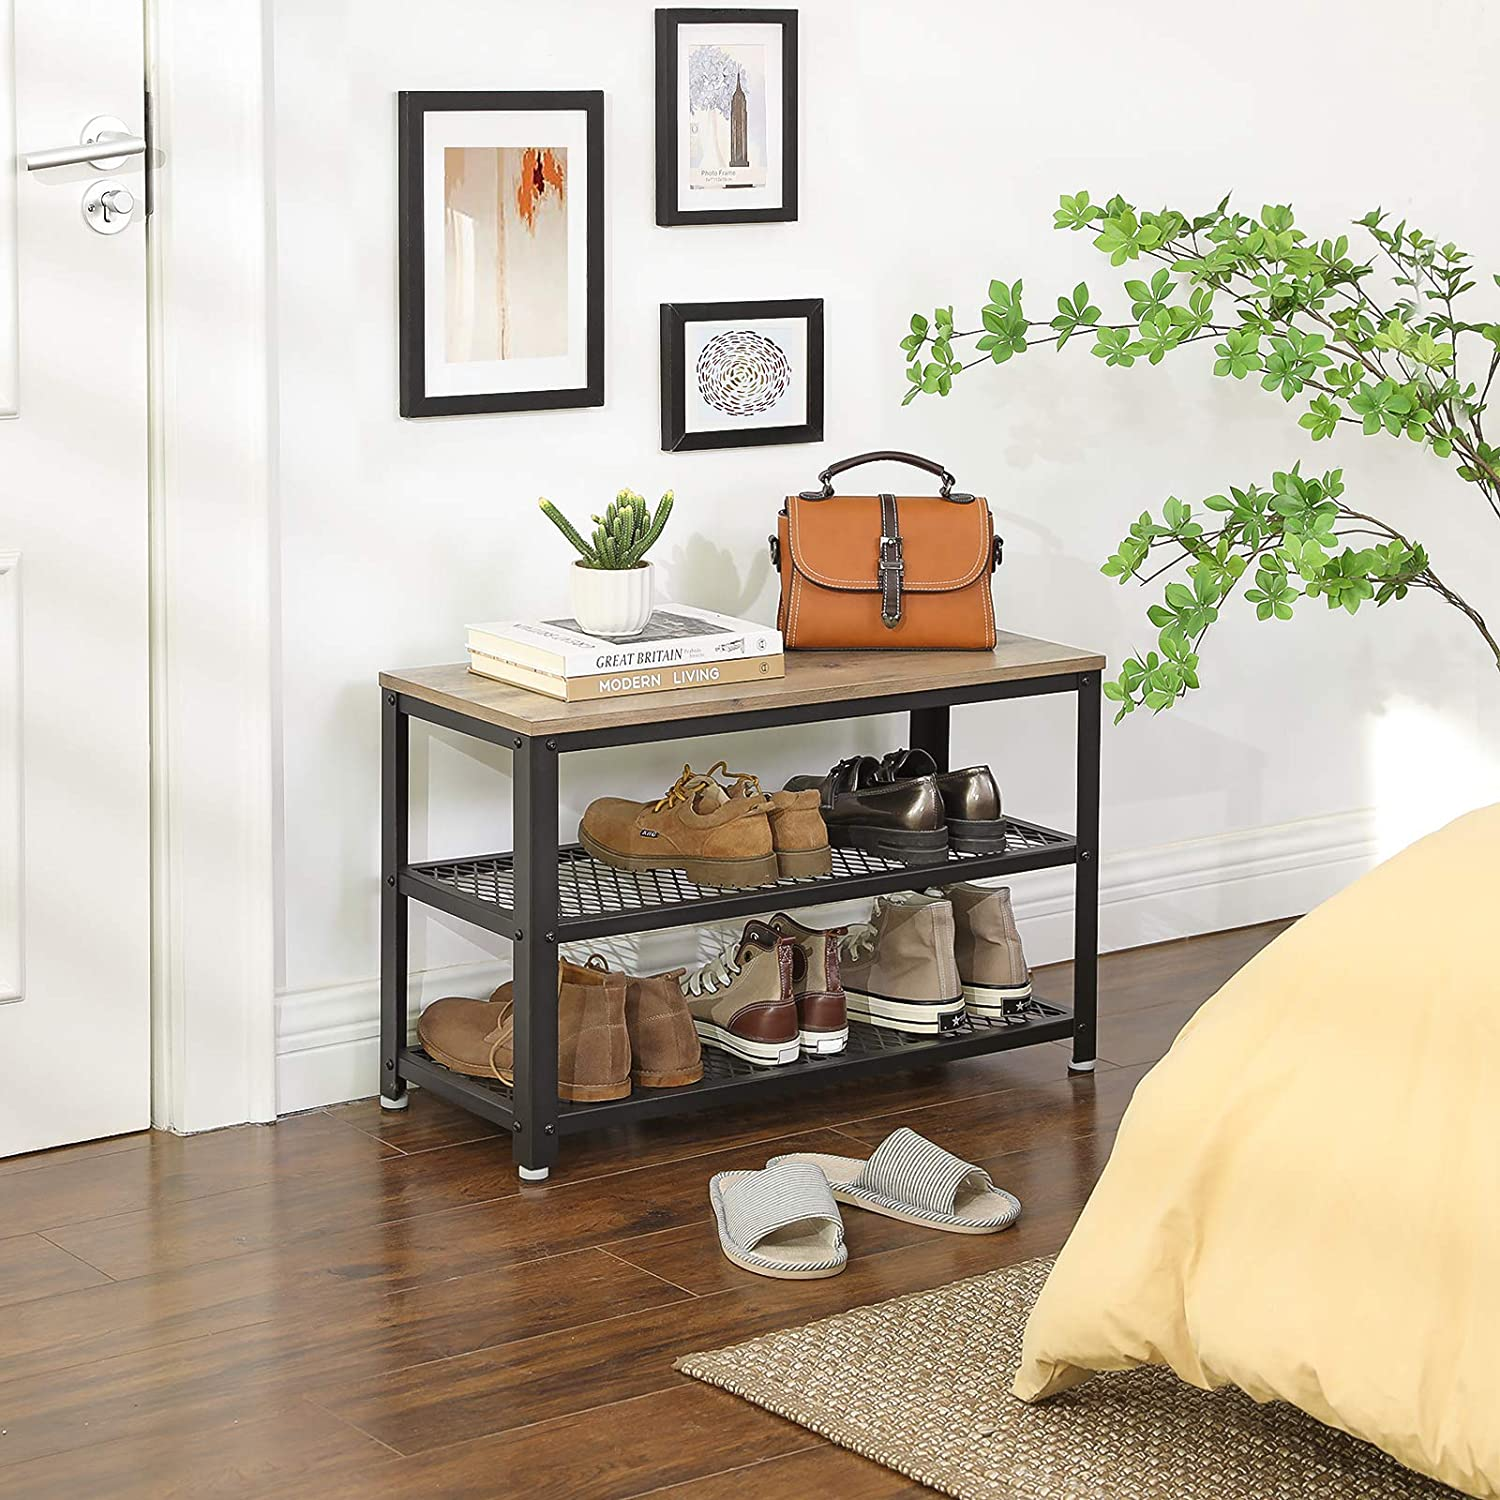 Industrial Design Accent Furniture for Entryway 3-Tier Shoe Rack Living Room Hazelnut Brown and Black ULBS073B03 Storage Shelves with Seat Steel Frame Hallway VASAGLE Shoe Bench